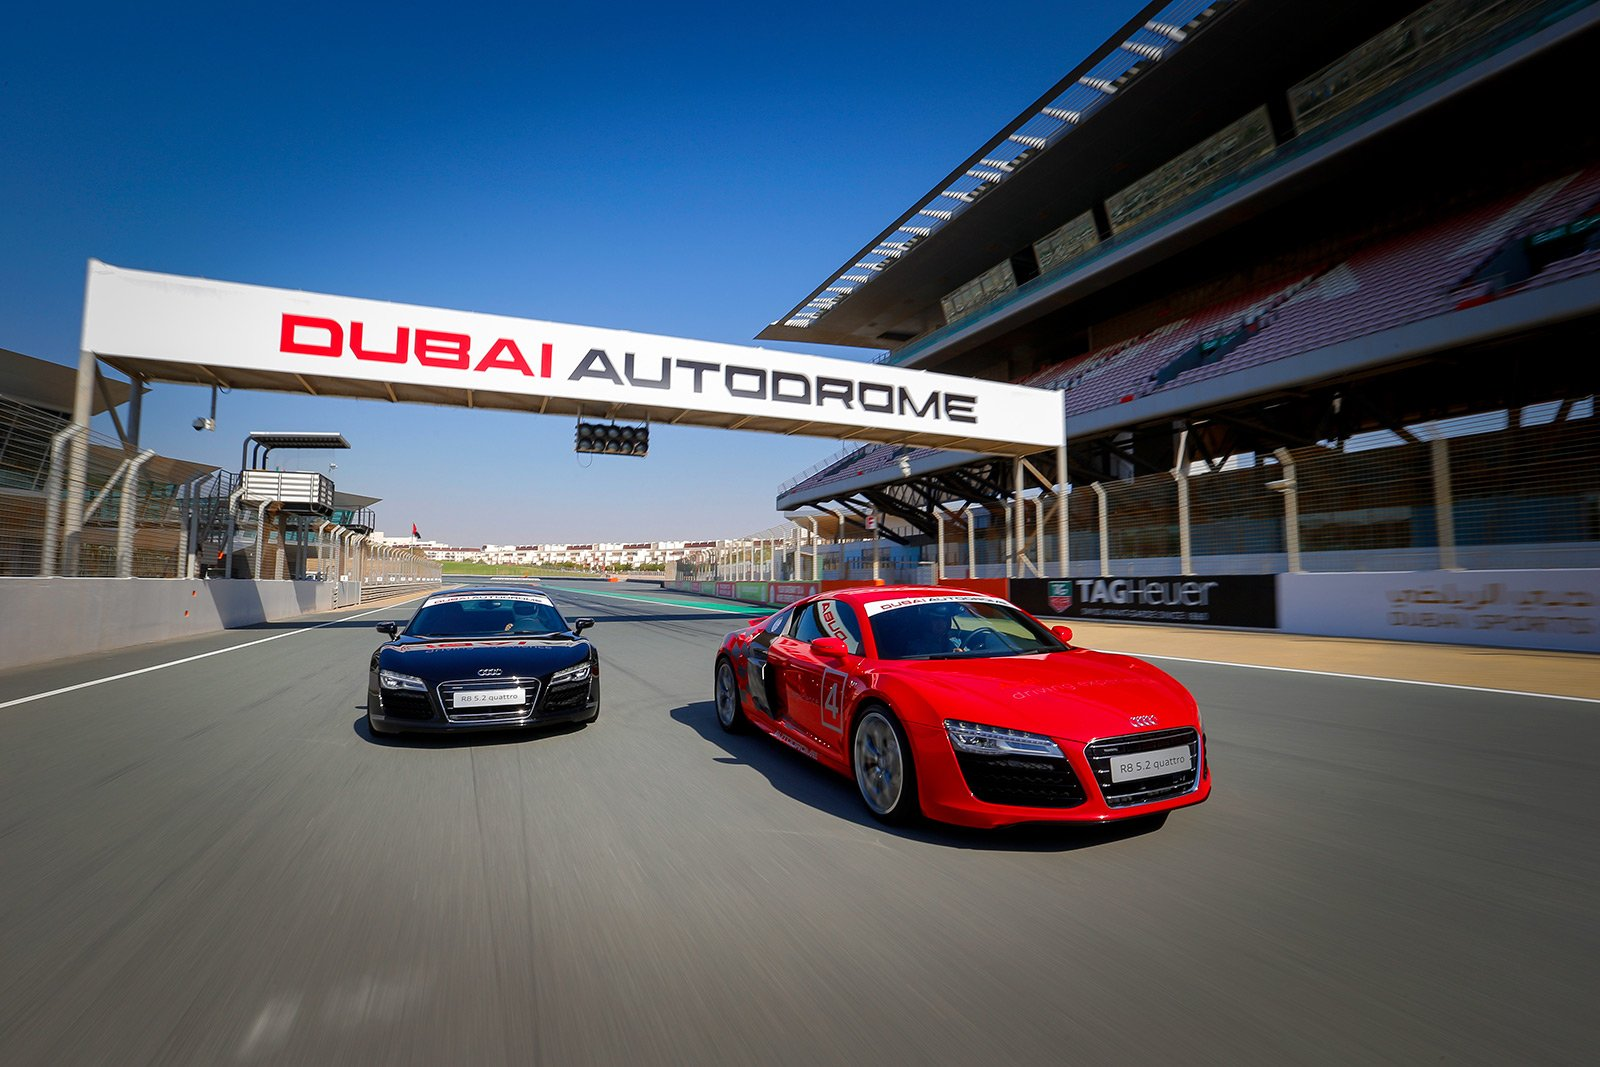 How to drive Audi R8 on a racing track in Dubai